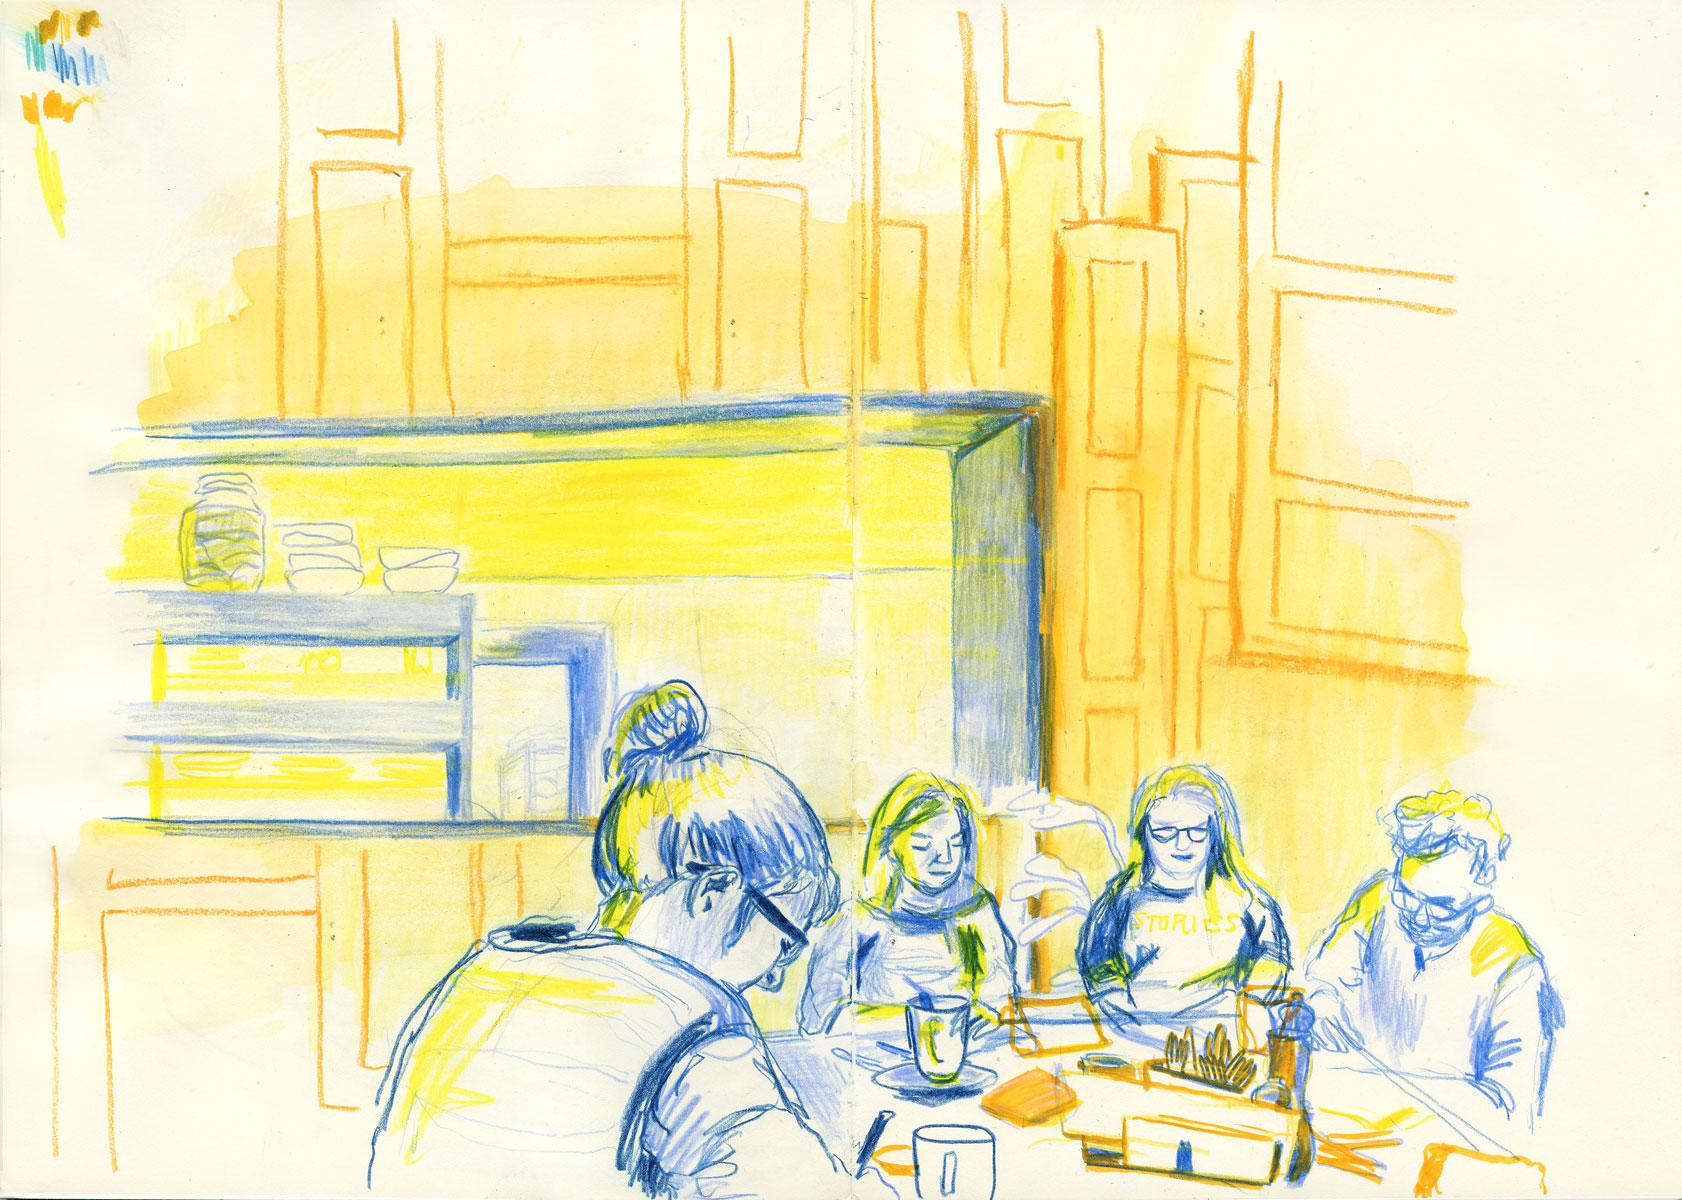 Illustration of group at Bunk Hotel Utrecht by Ellen Vesters picture book illustrator